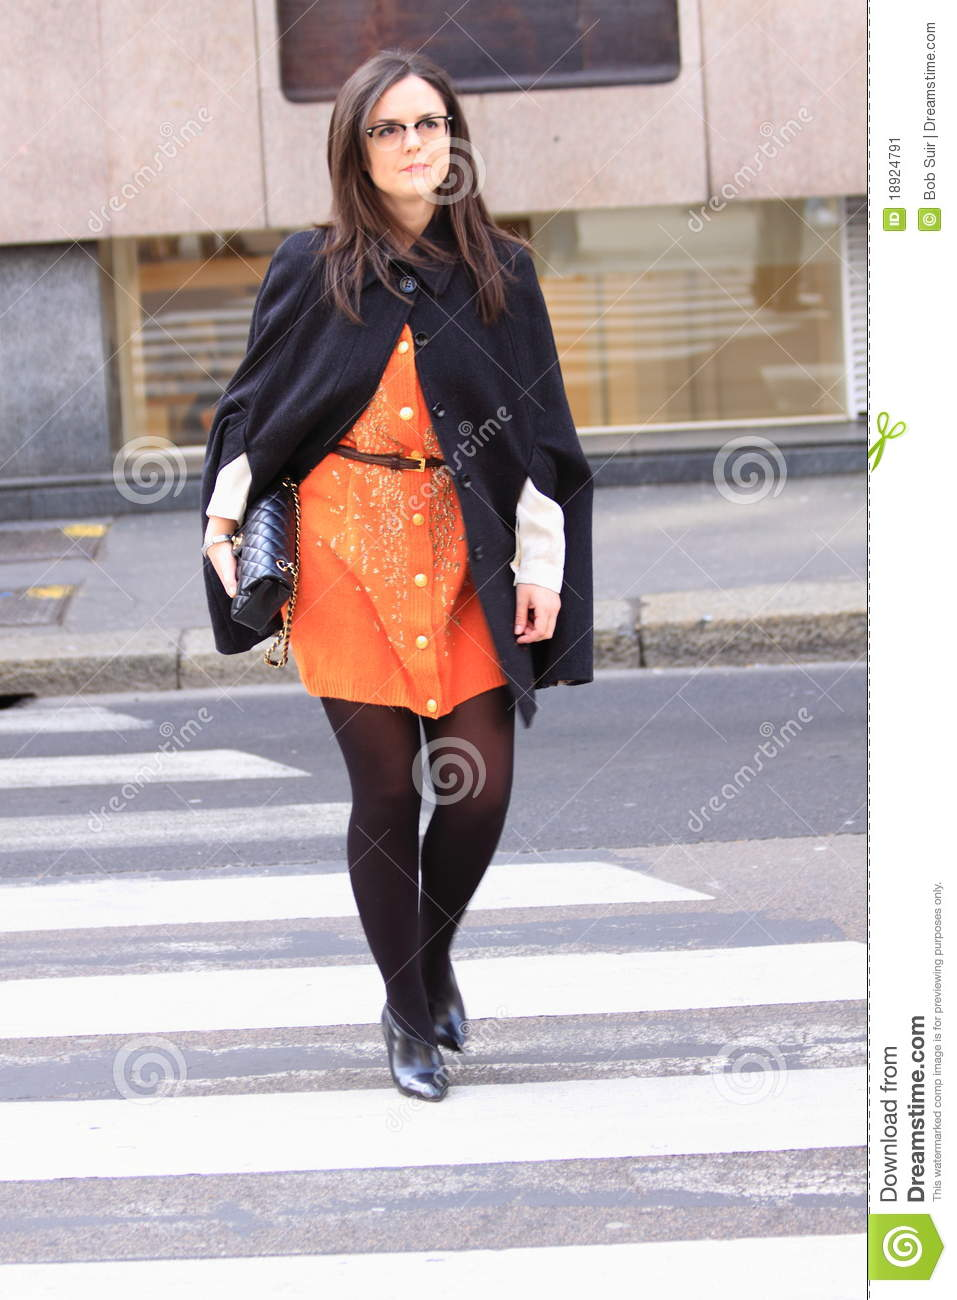 Milan Street Town Fashion Editorial Photo Image 18924791